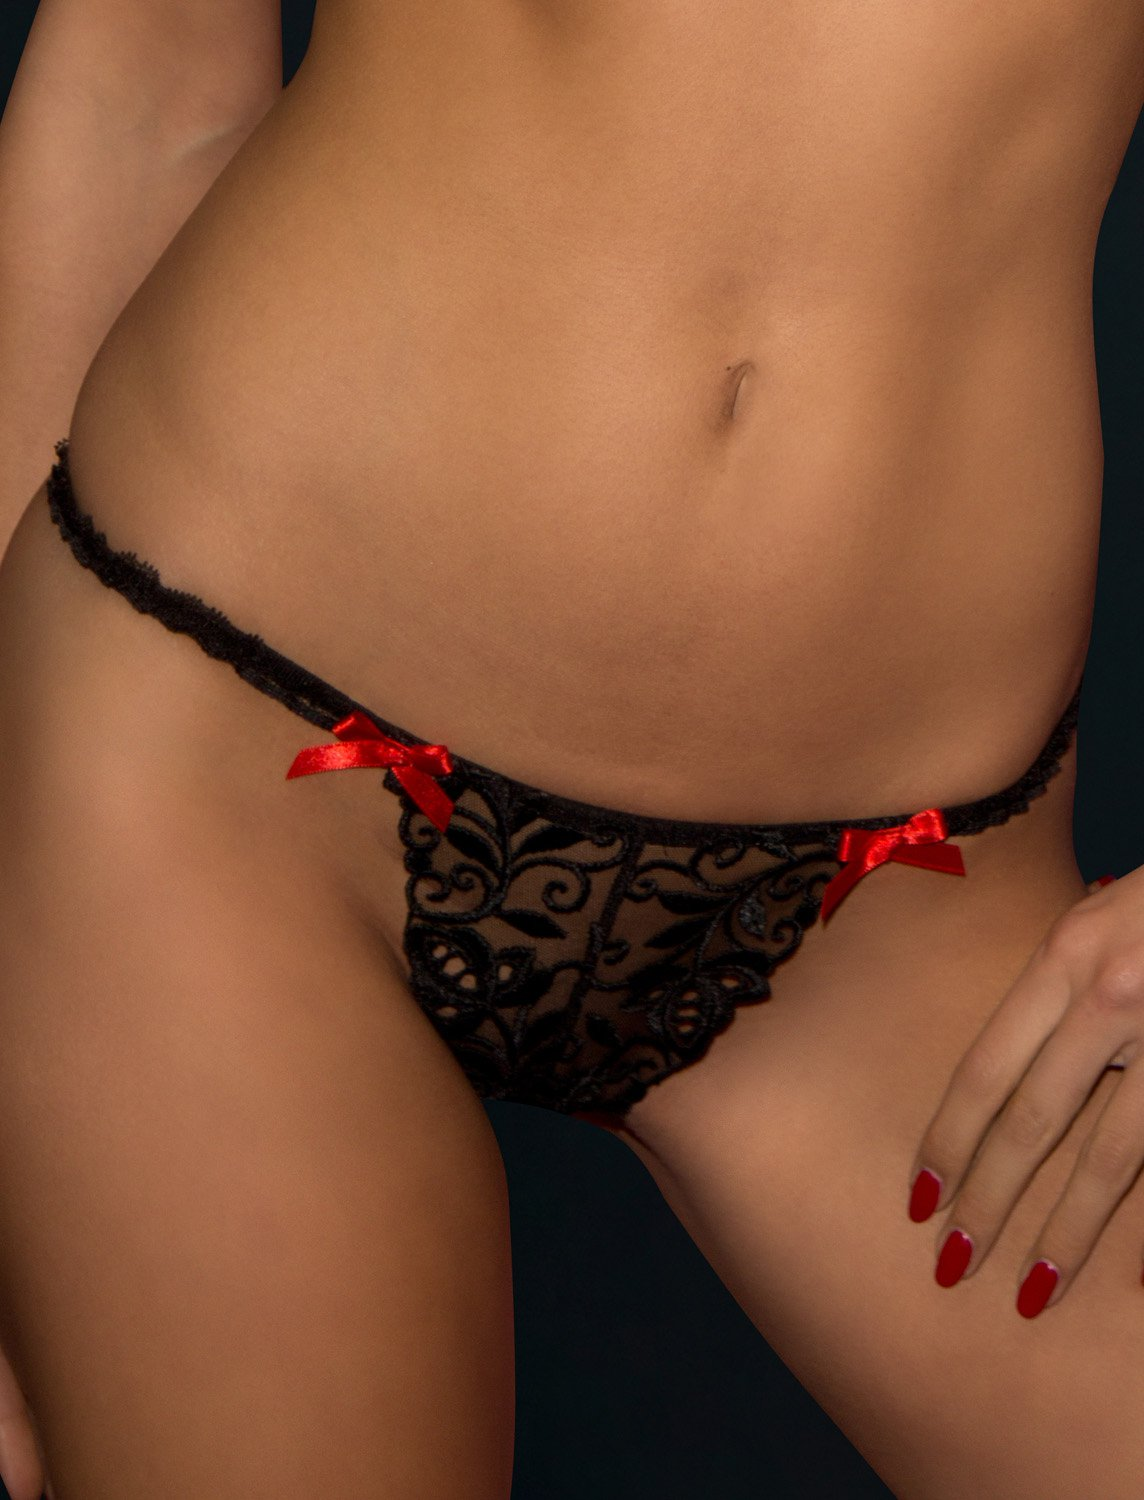 Peche French thong, size M